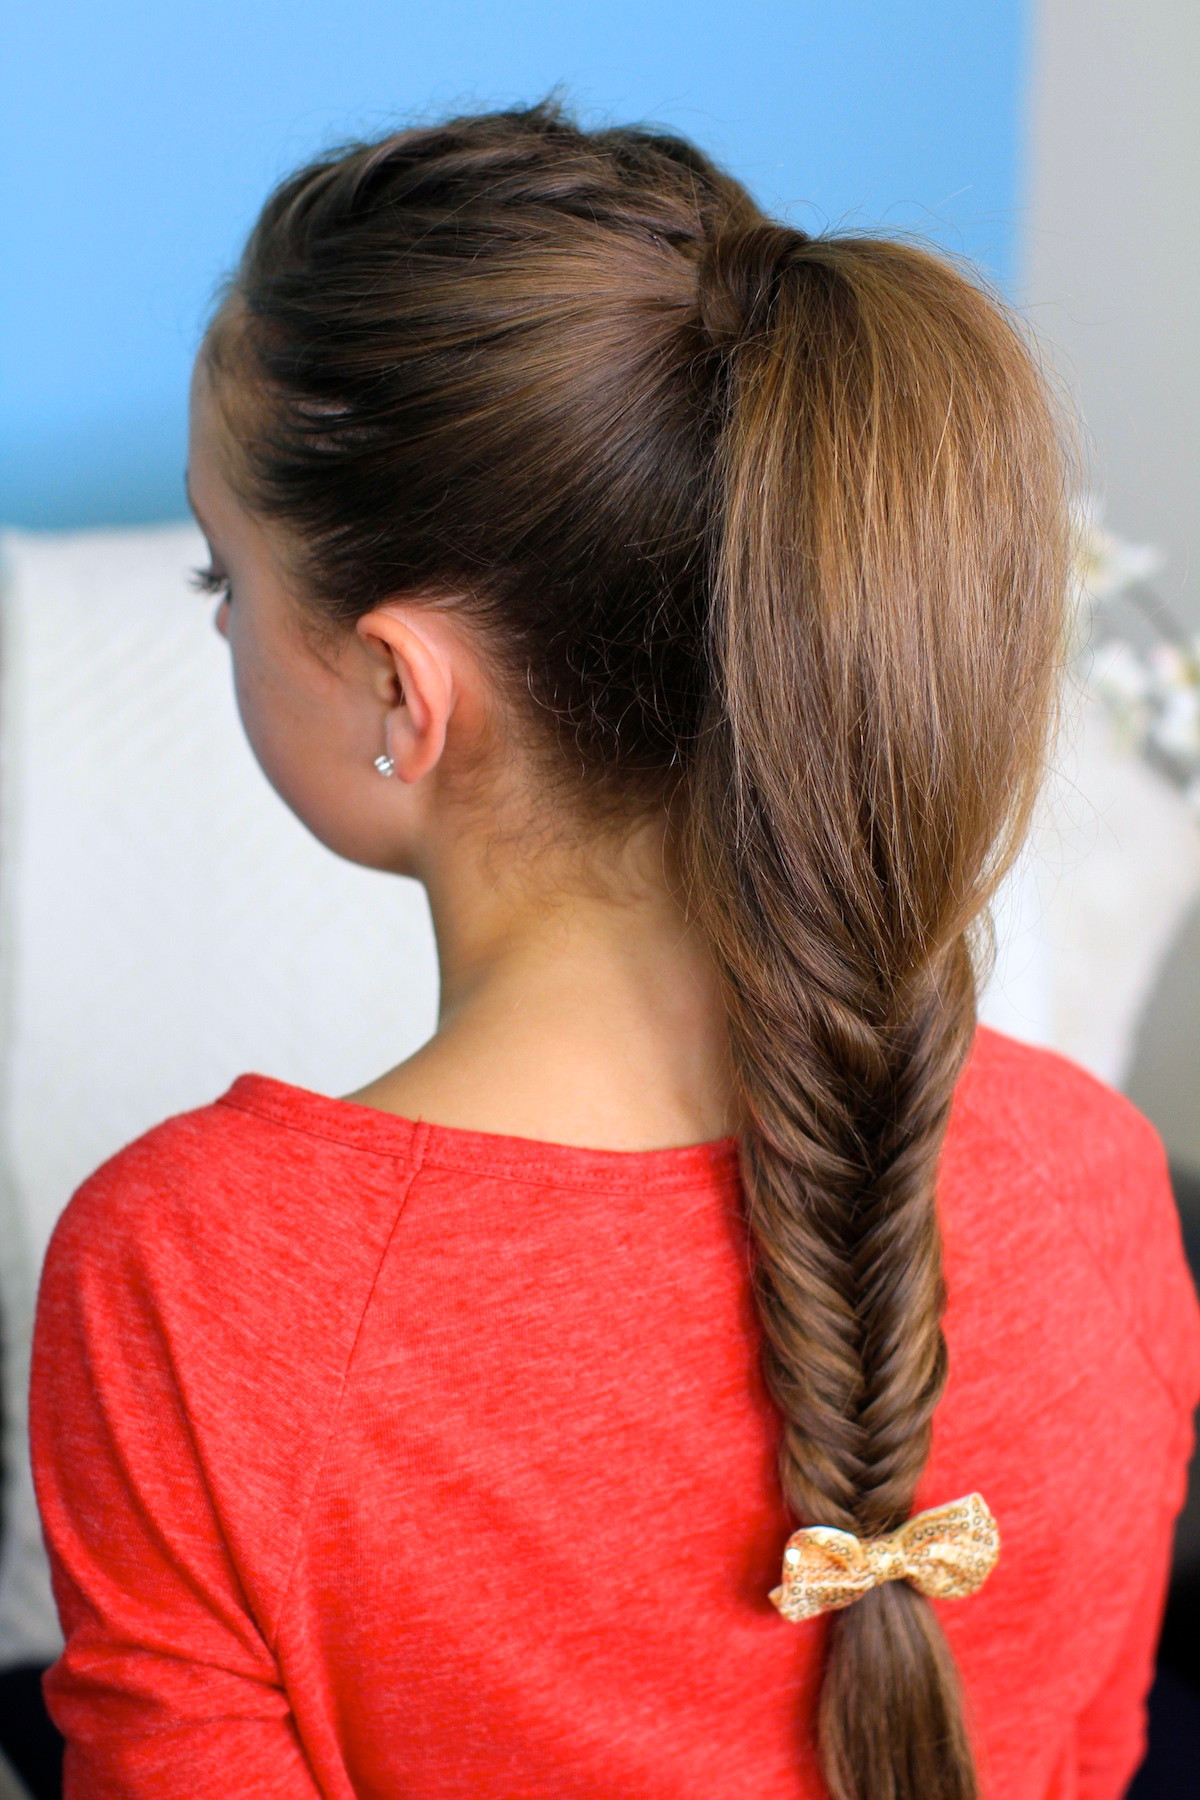 Best ideas about Cute Girls Haircuts . Save or Pin Fluffy Fishtail Braid Hairstyles for Long Hair Now.